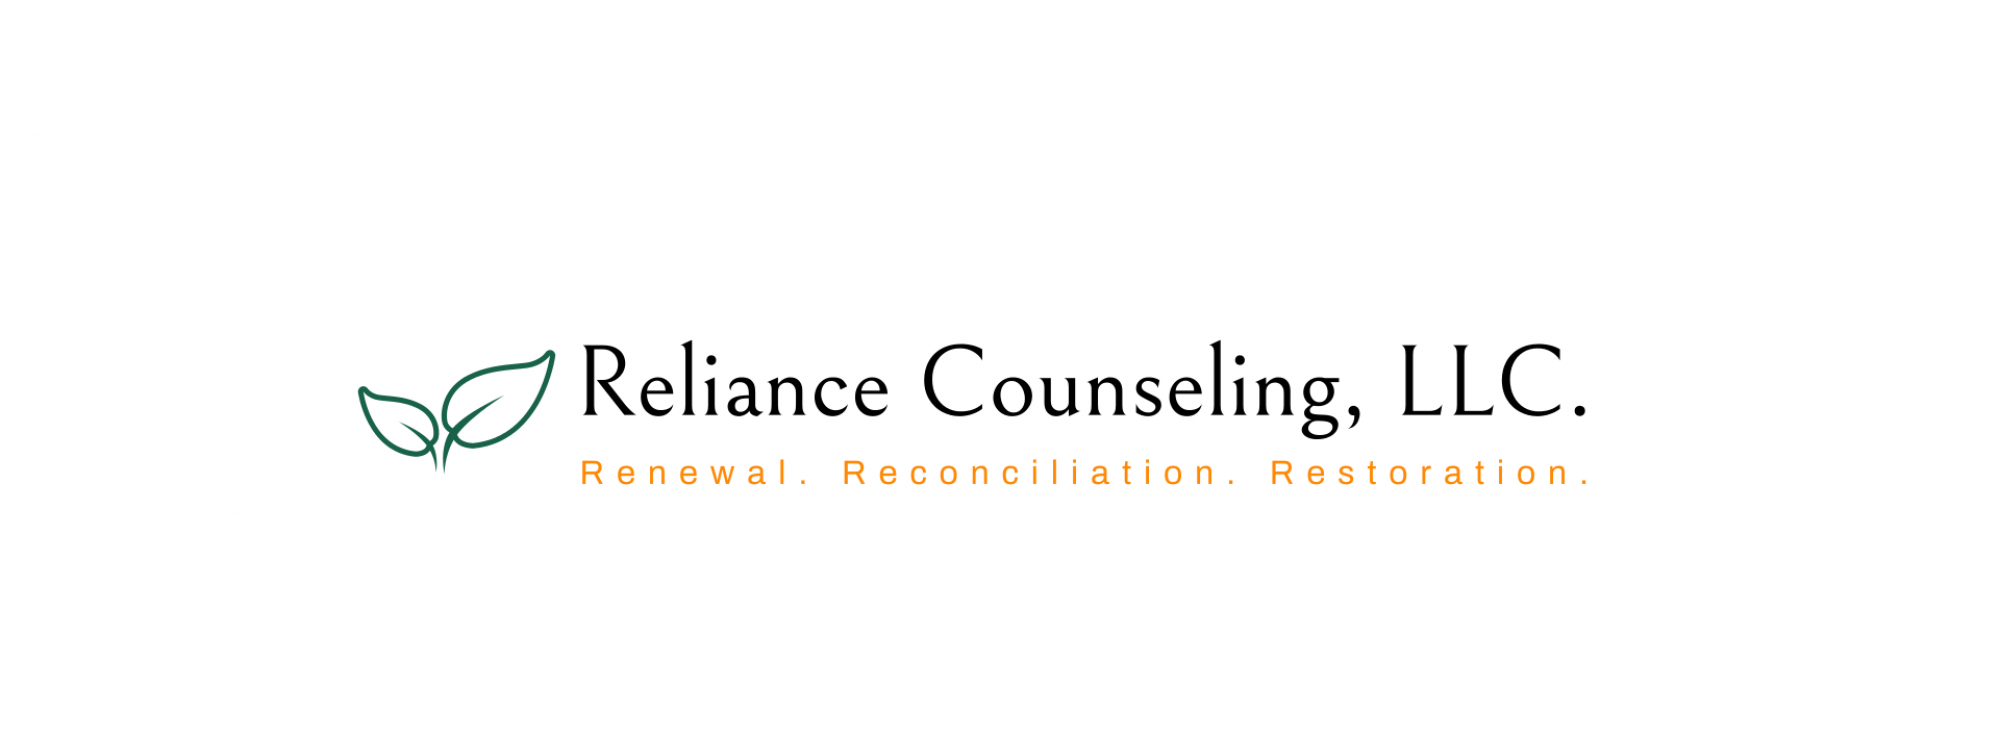 Reliance Counseling, LLC.